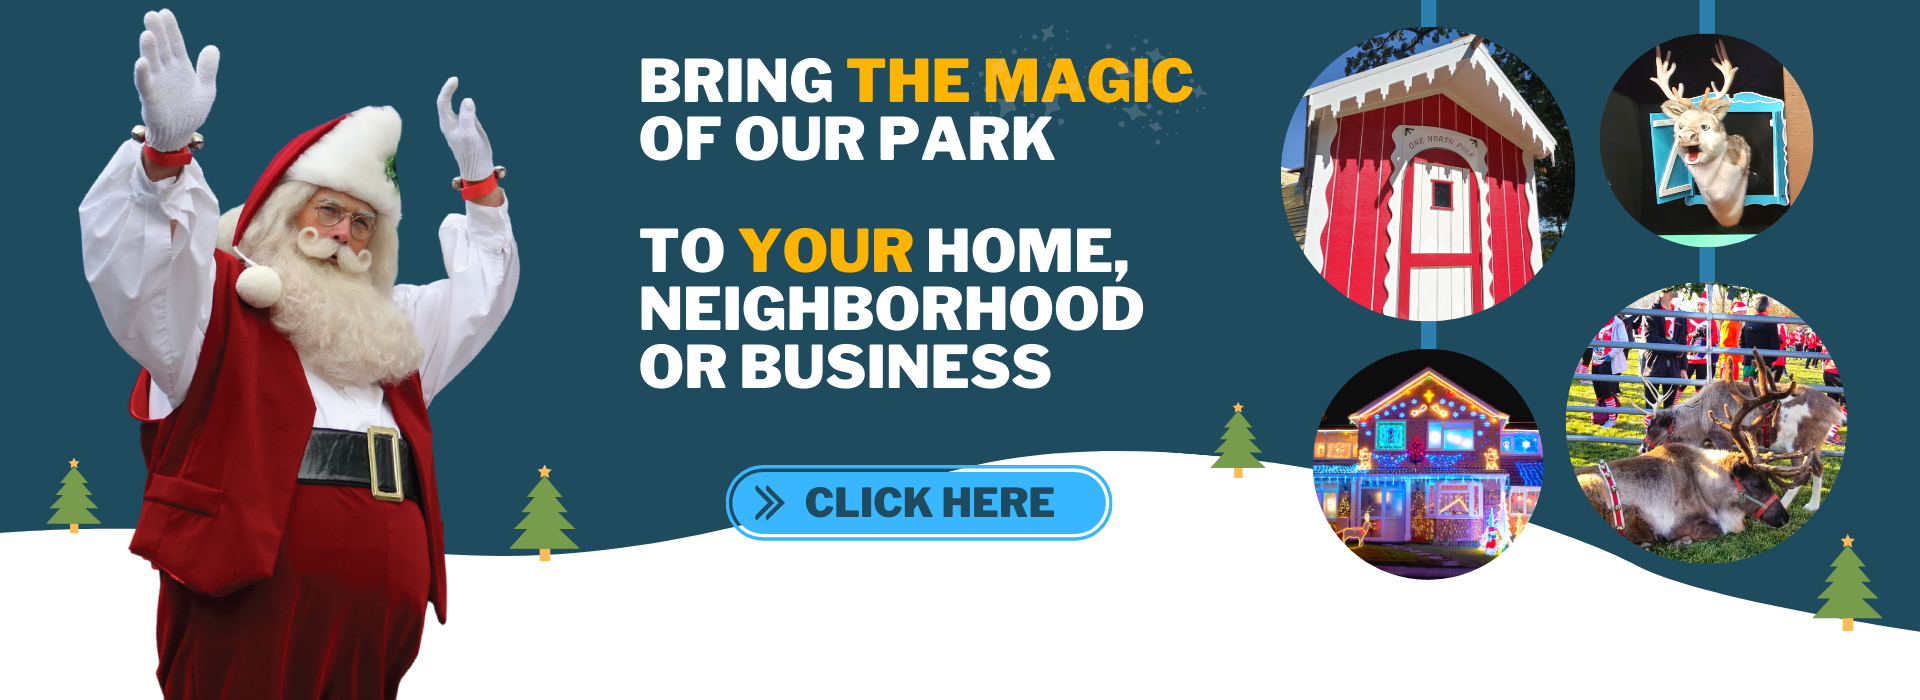 bring the magic of our park to your home or business